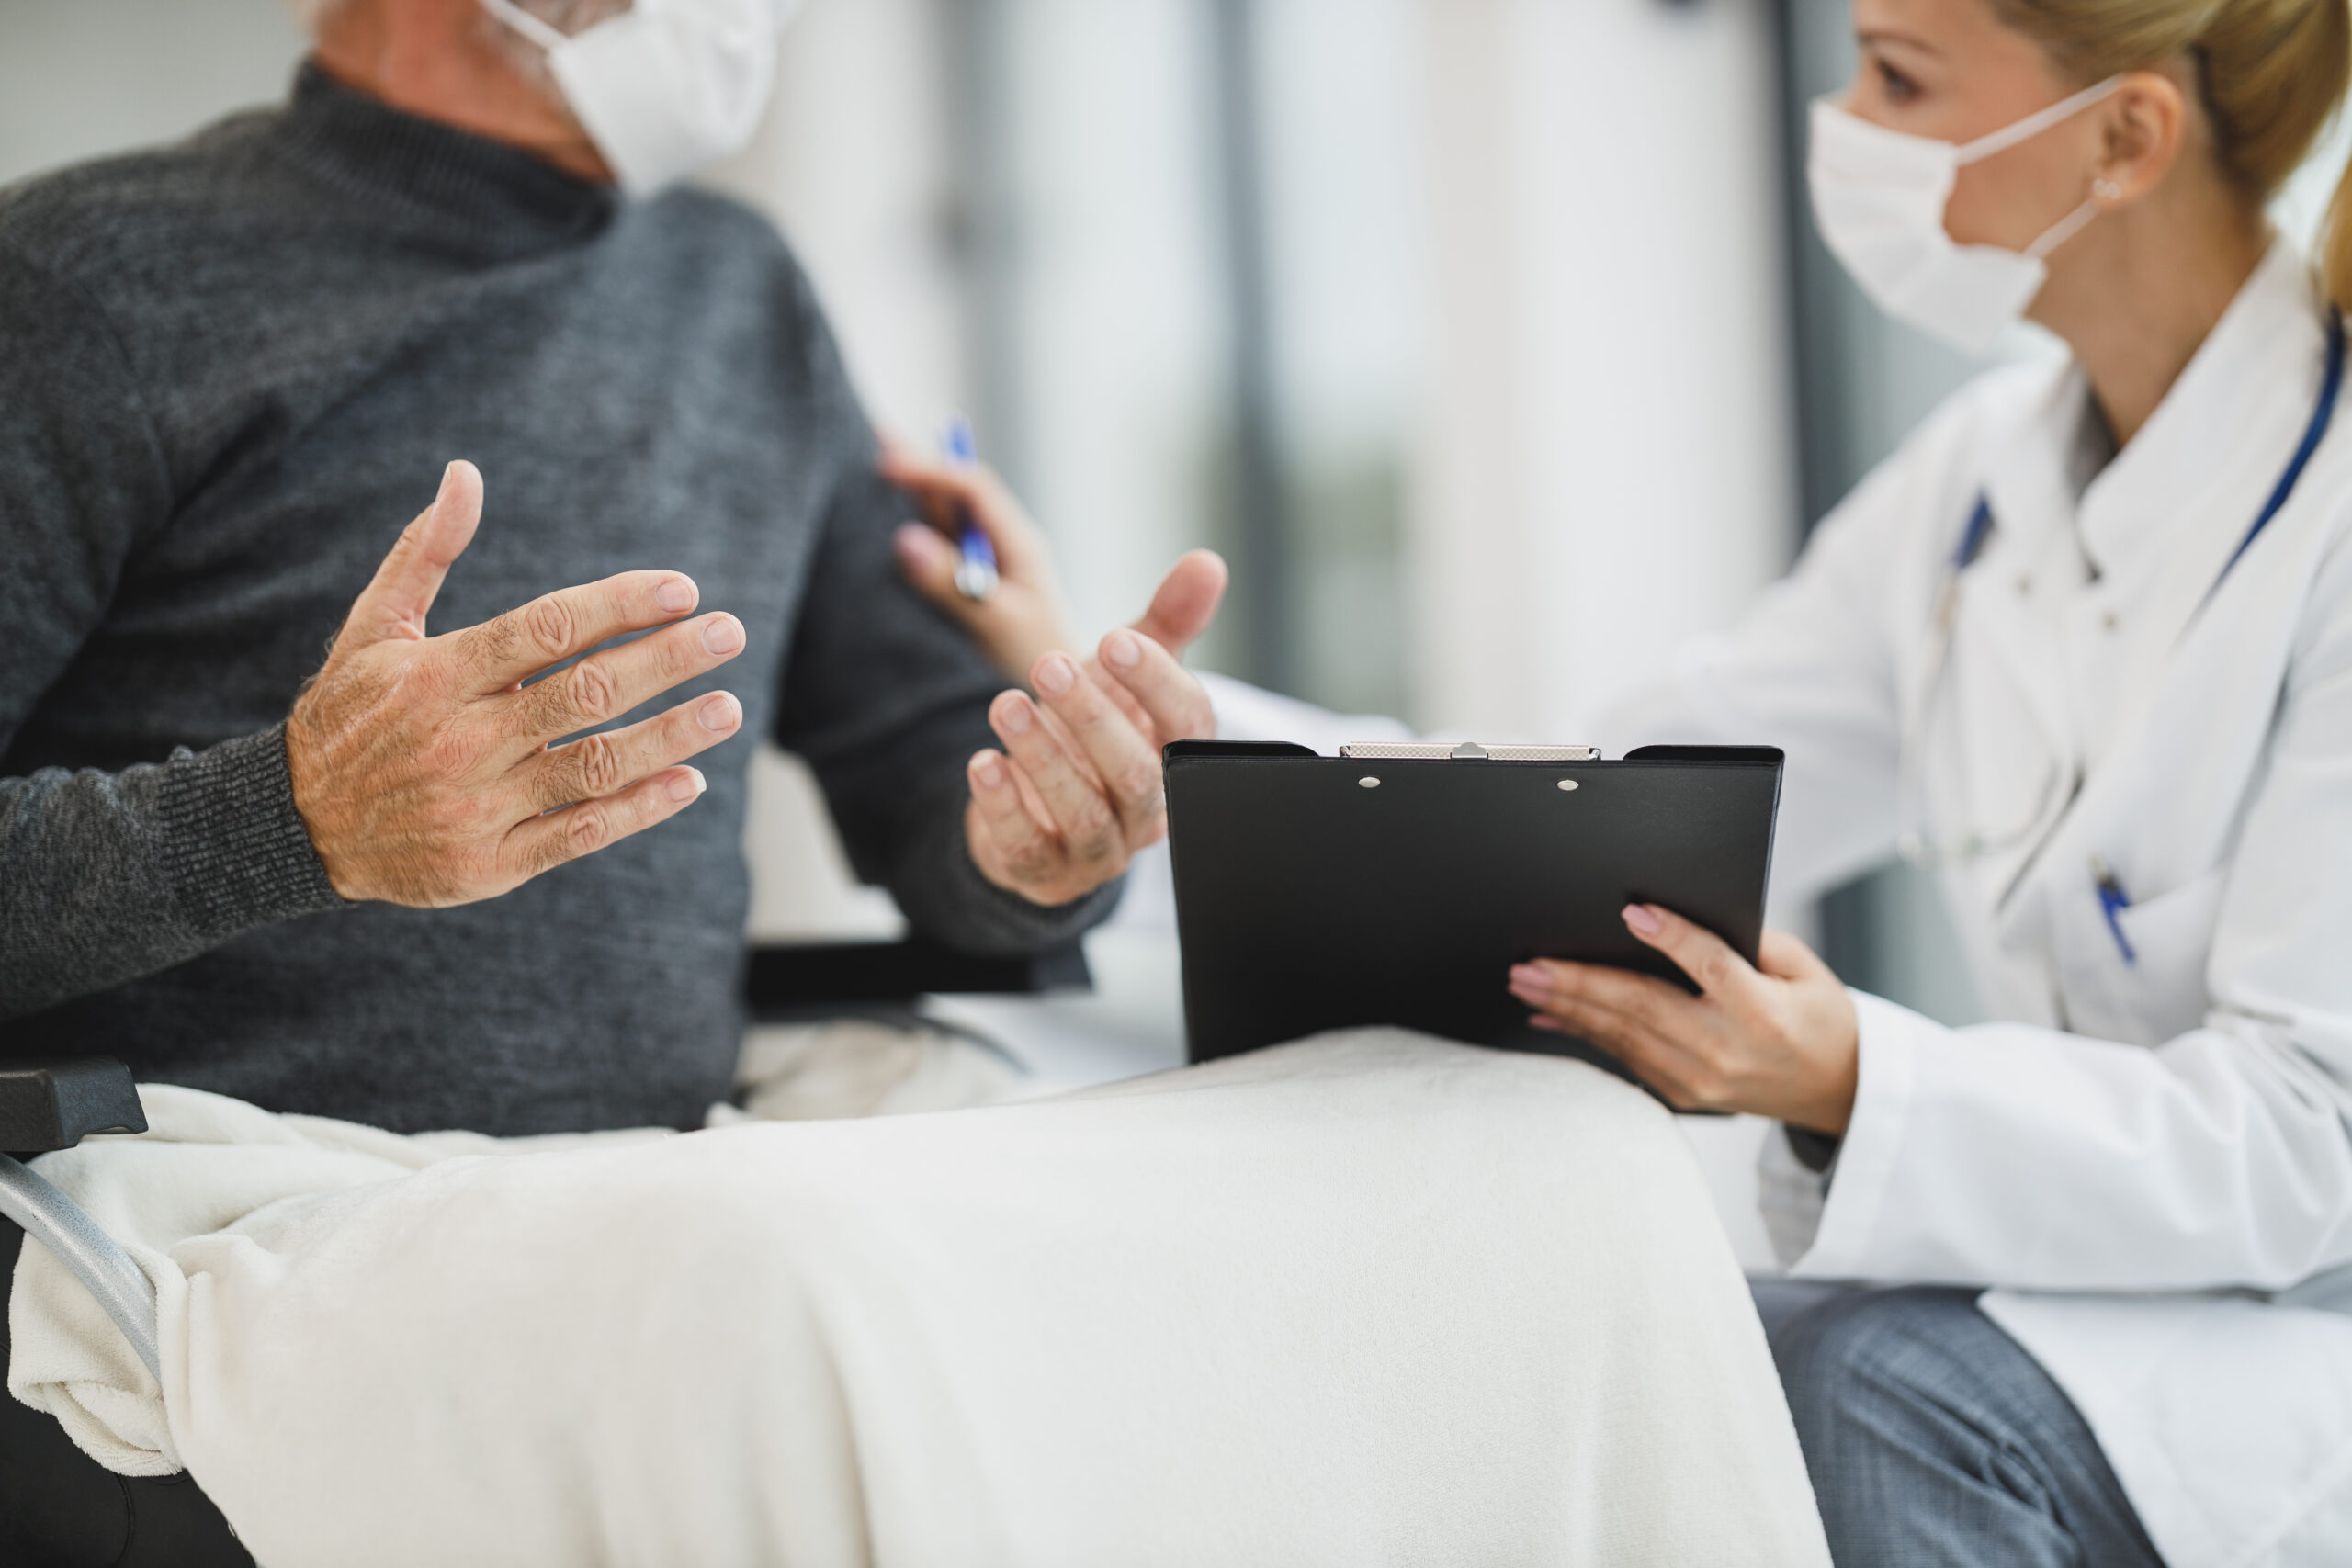 Caregiver Discussing Options with Patient